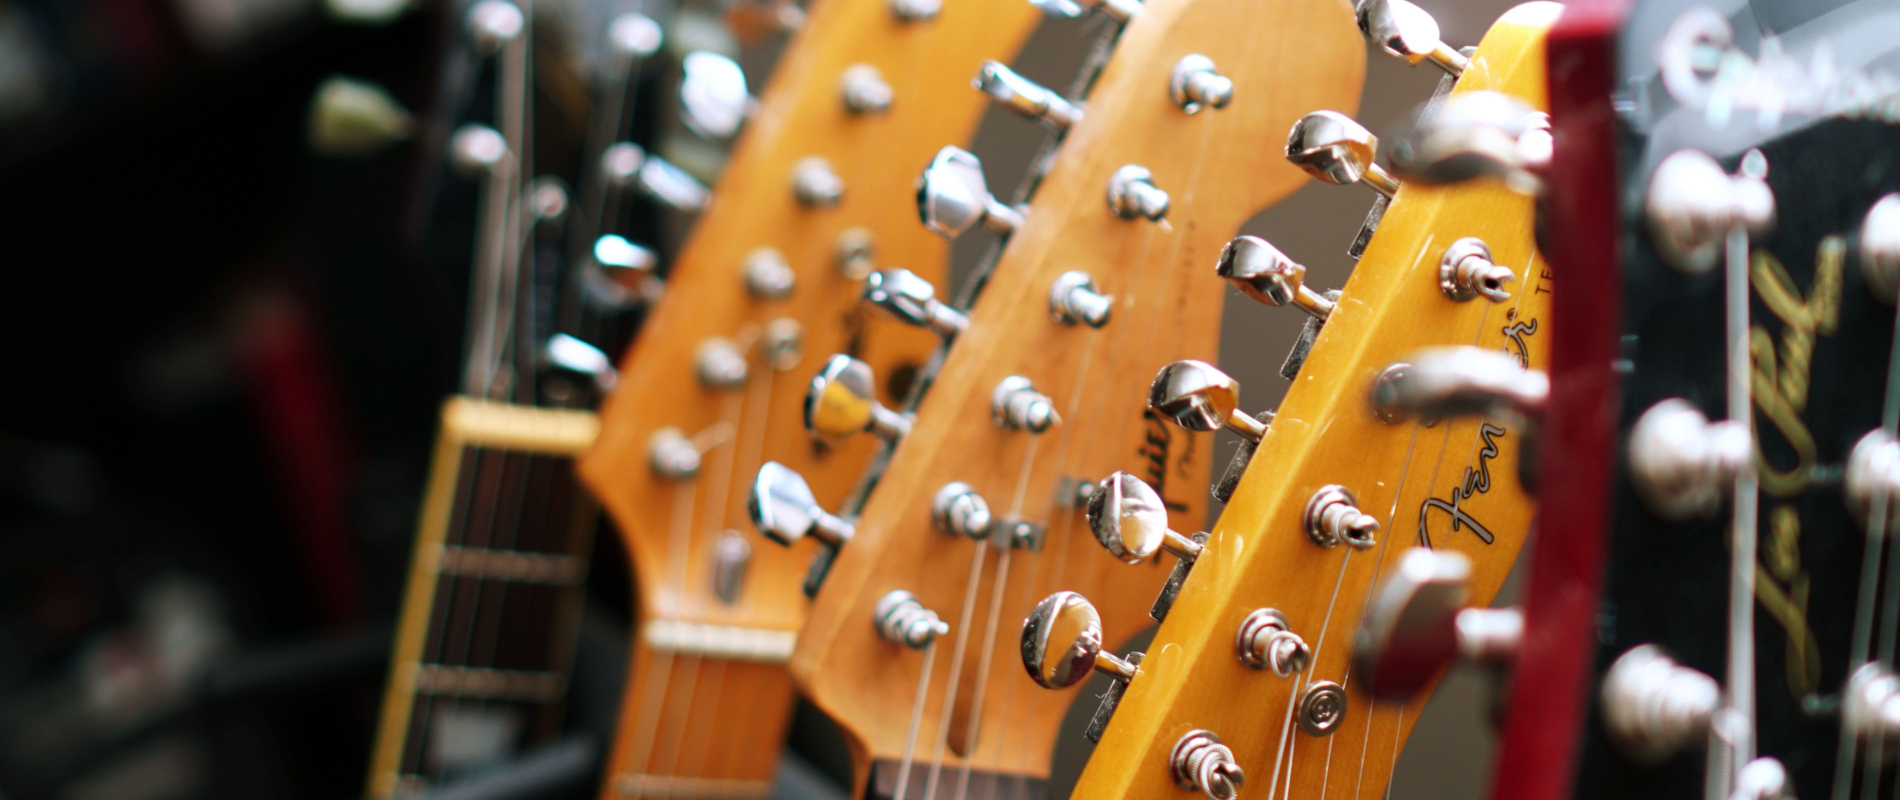 8 reasons you need to buy another guitar